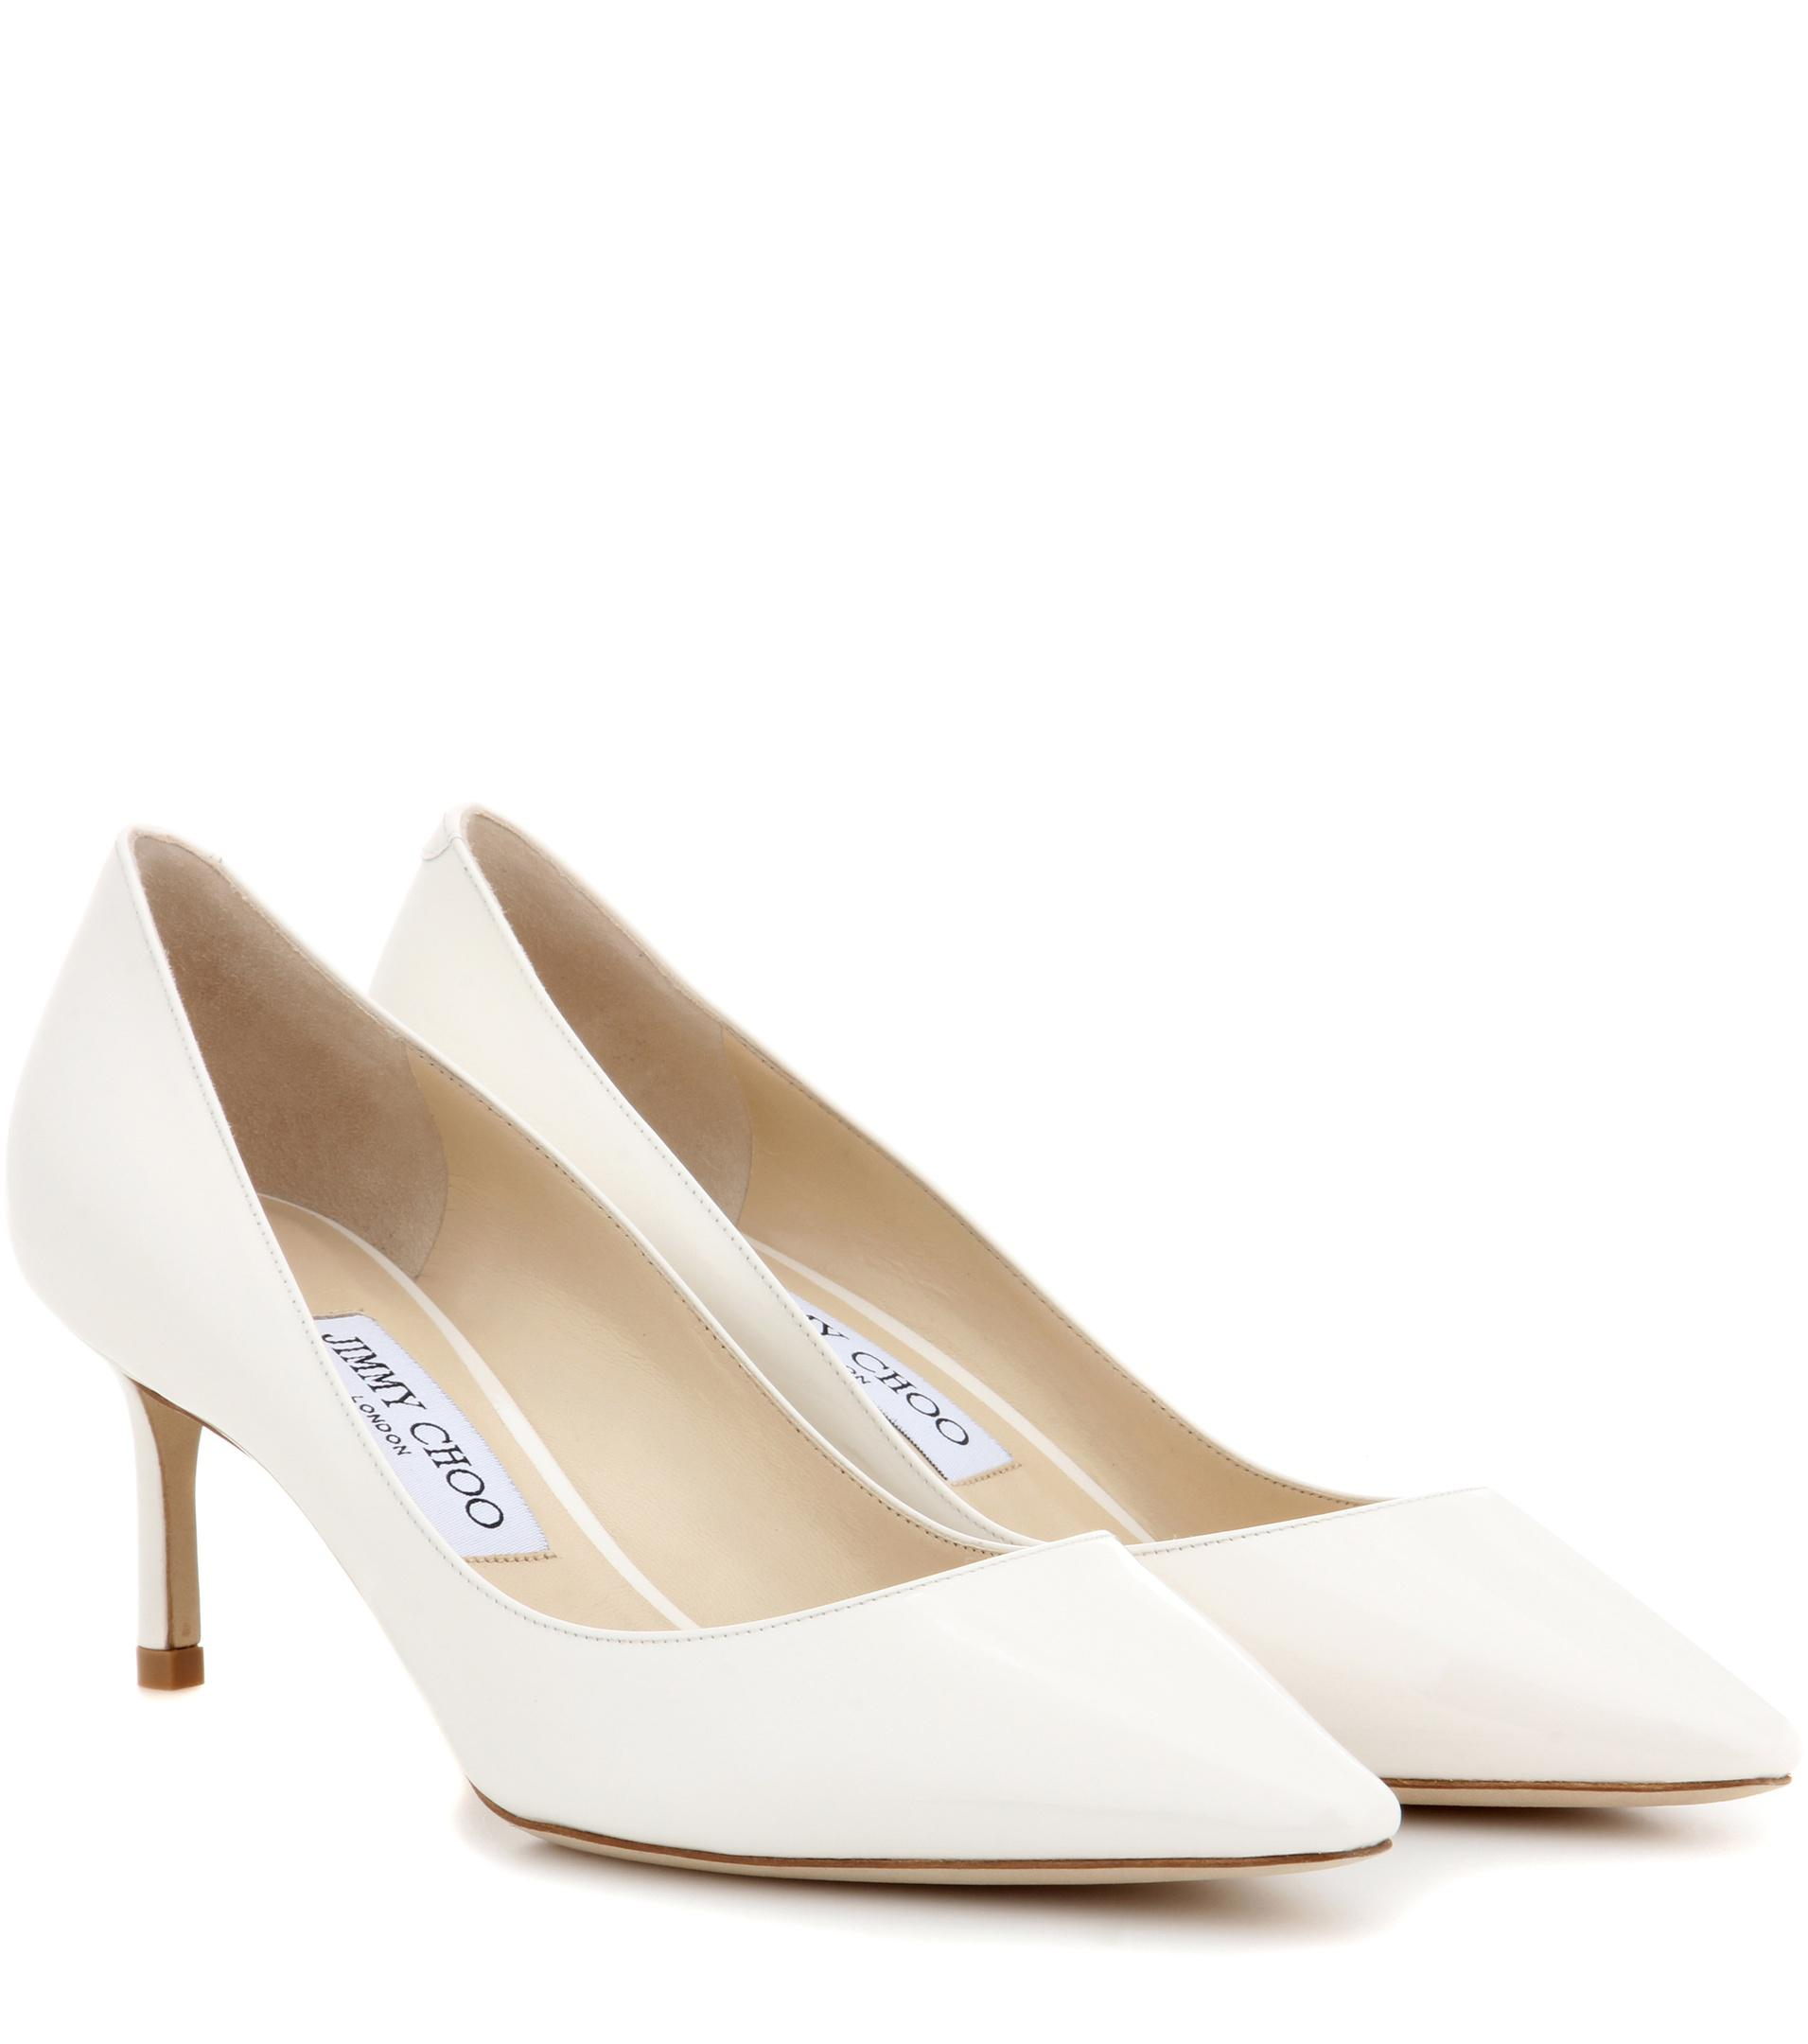 081a4b2409 Jimmy Choo Romy 60 Patent Leather Pumps in White - Lyst